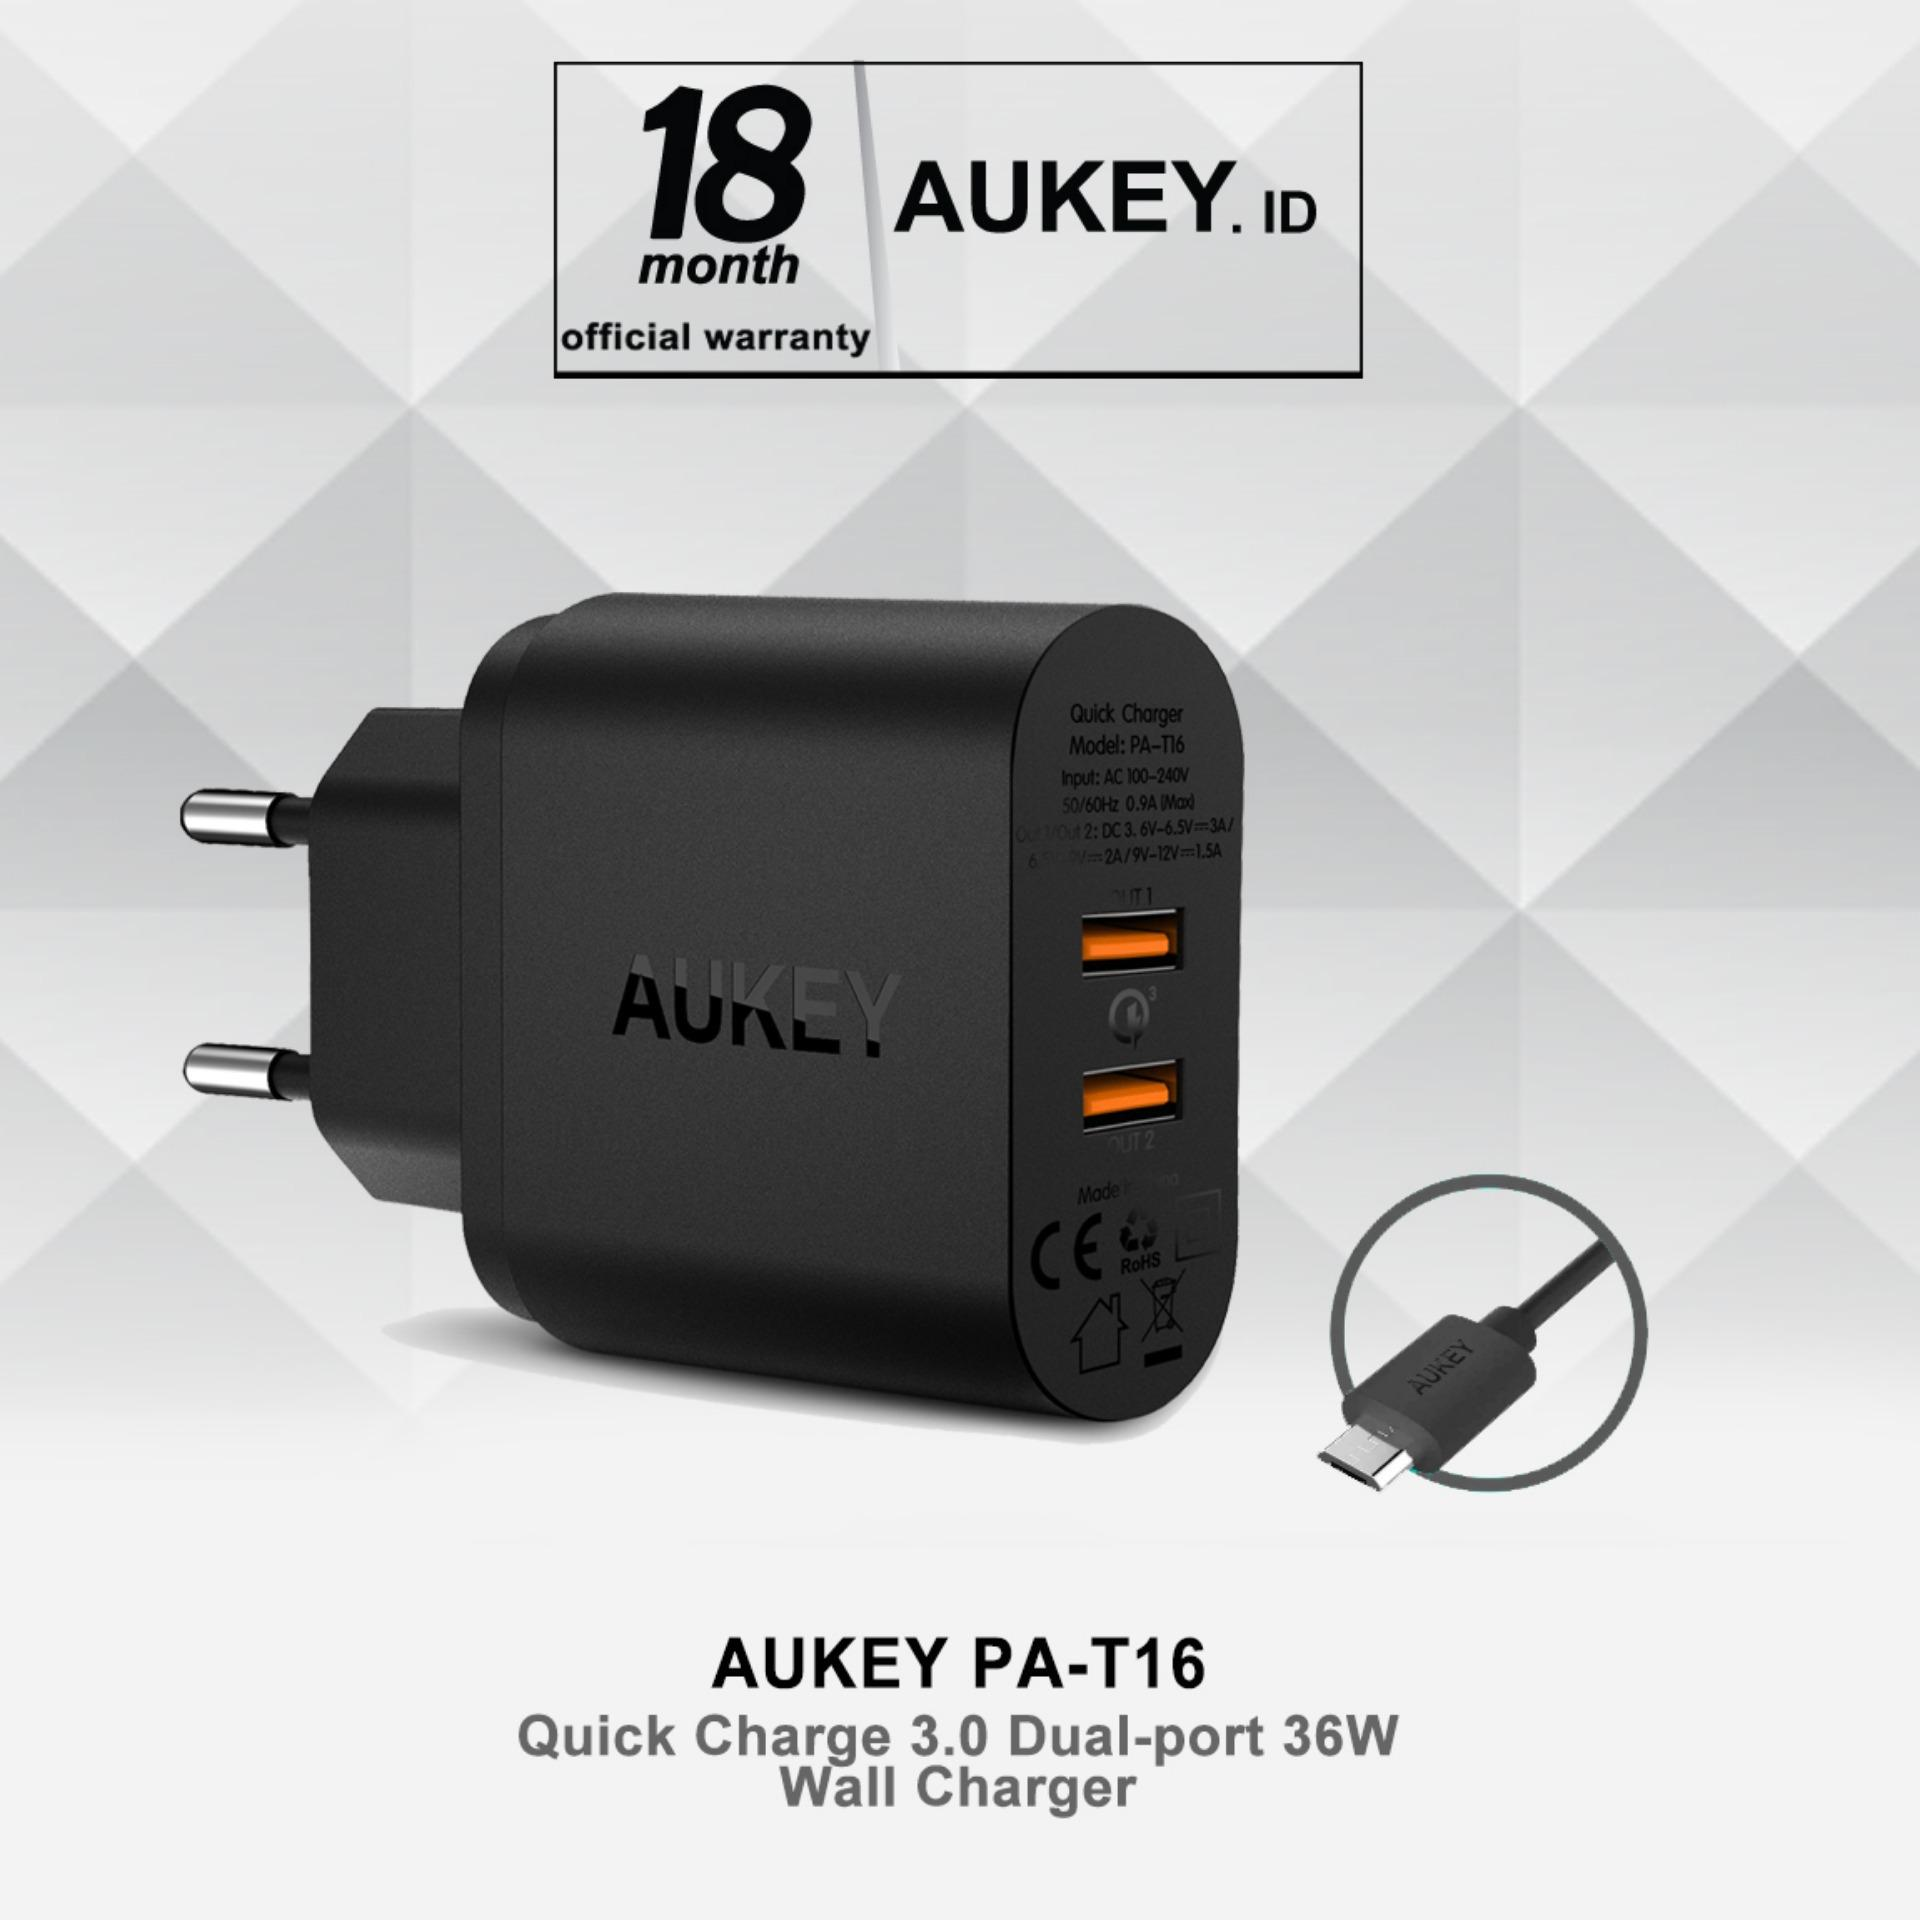 Jual Aukey Pa T16 36W 2 Port Usb Wall Charger With Quick Charge 3 Hitam Branded Murah